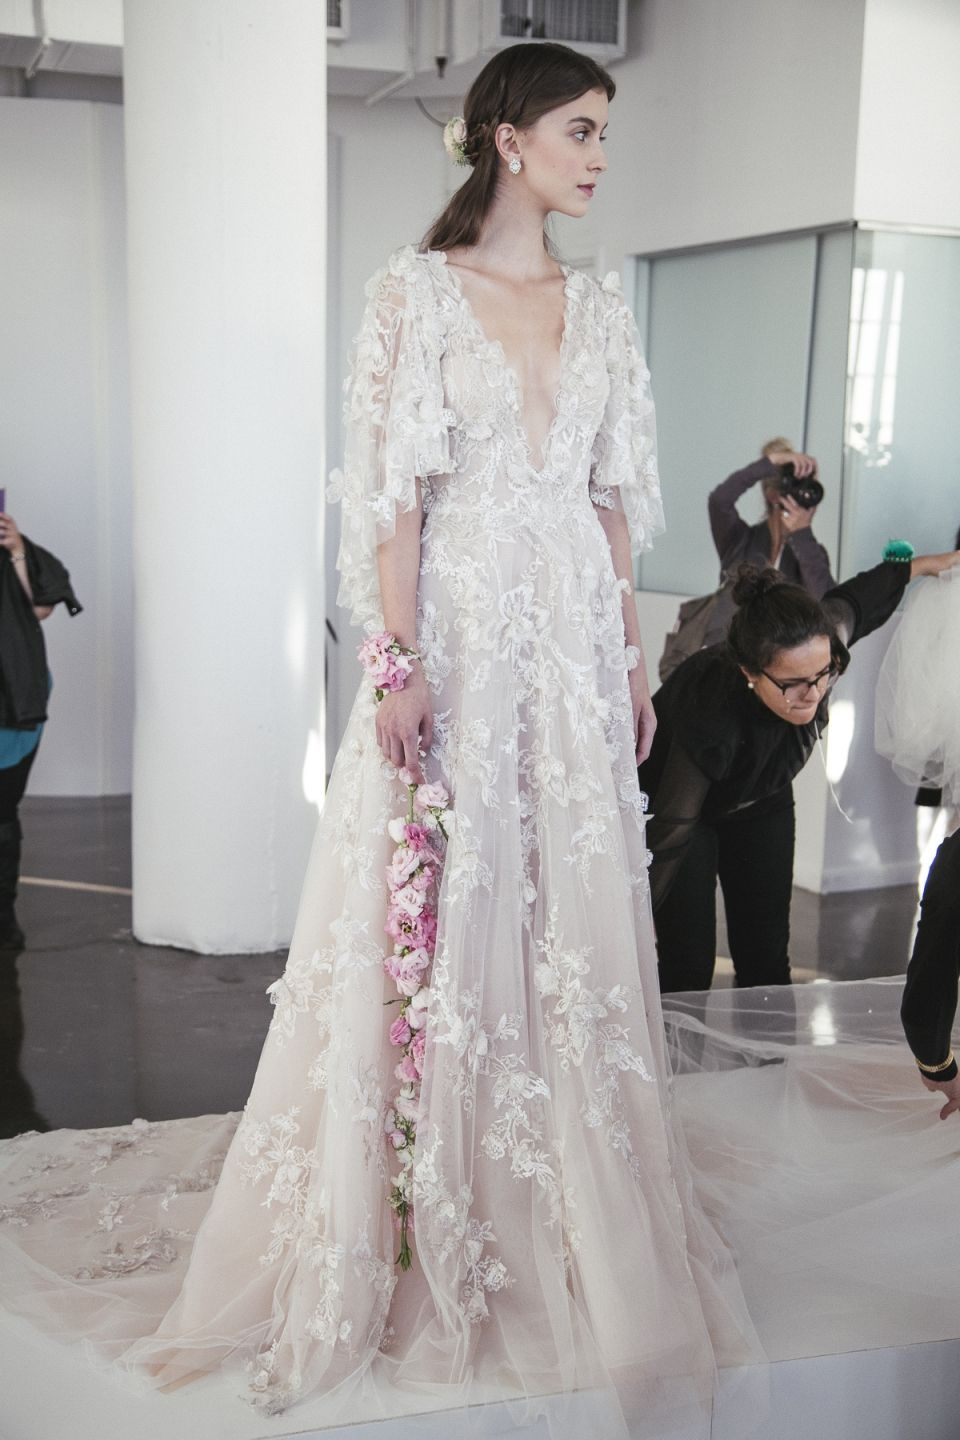 Ankle Length Wedding Dress | Pinterest | Ethereal, Marchesa and ...